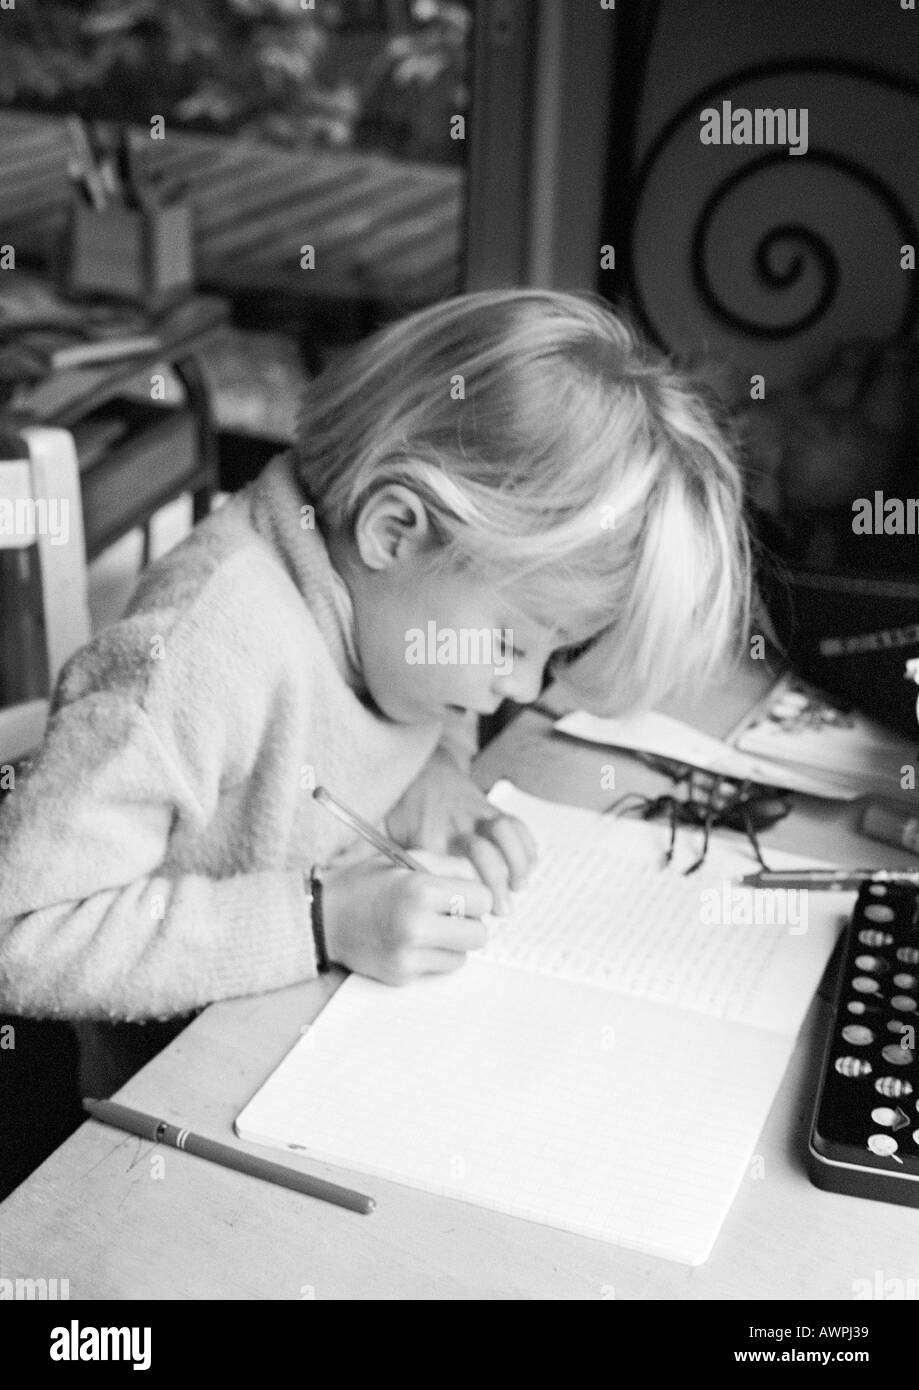 Girl sitting at desk, writing in notebook, b&w - Stock Image